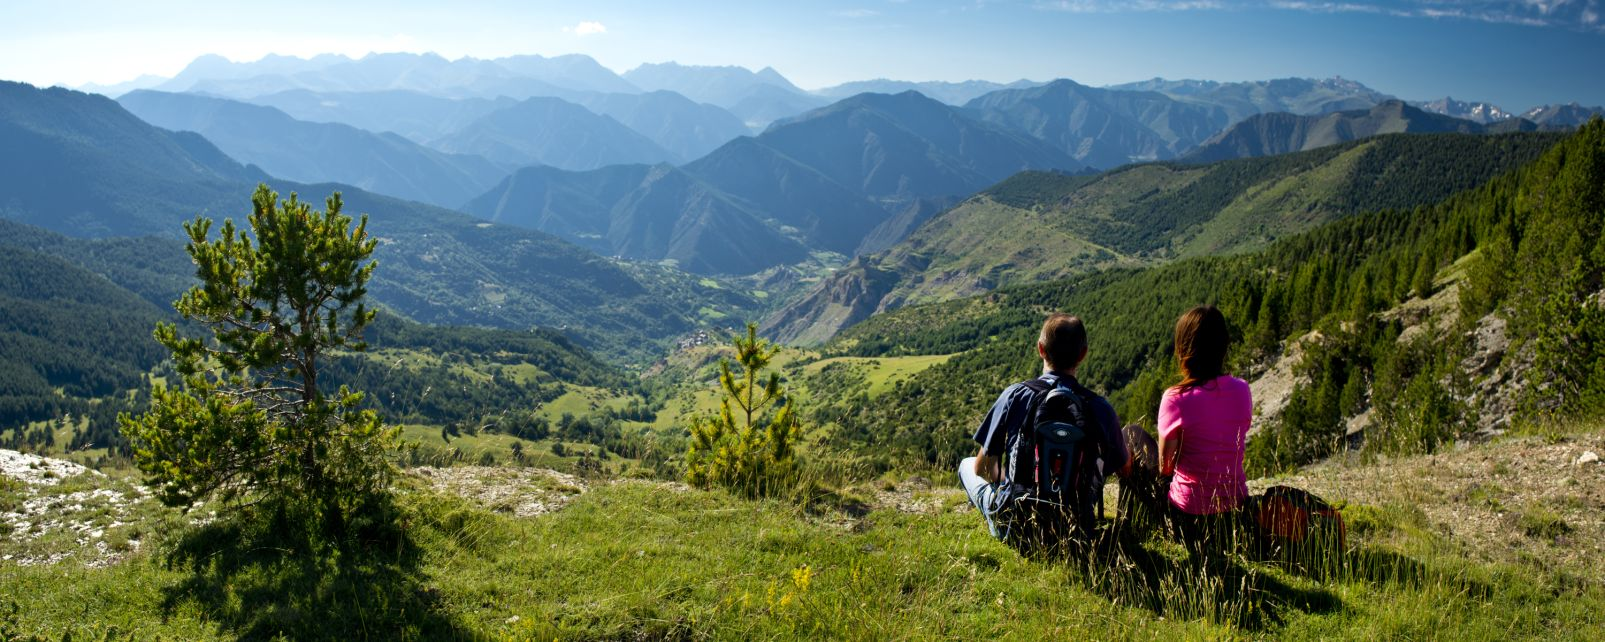 The Route of the Cathars, Le Chemin des Bonshommes, Activities and leisure, Catalonia